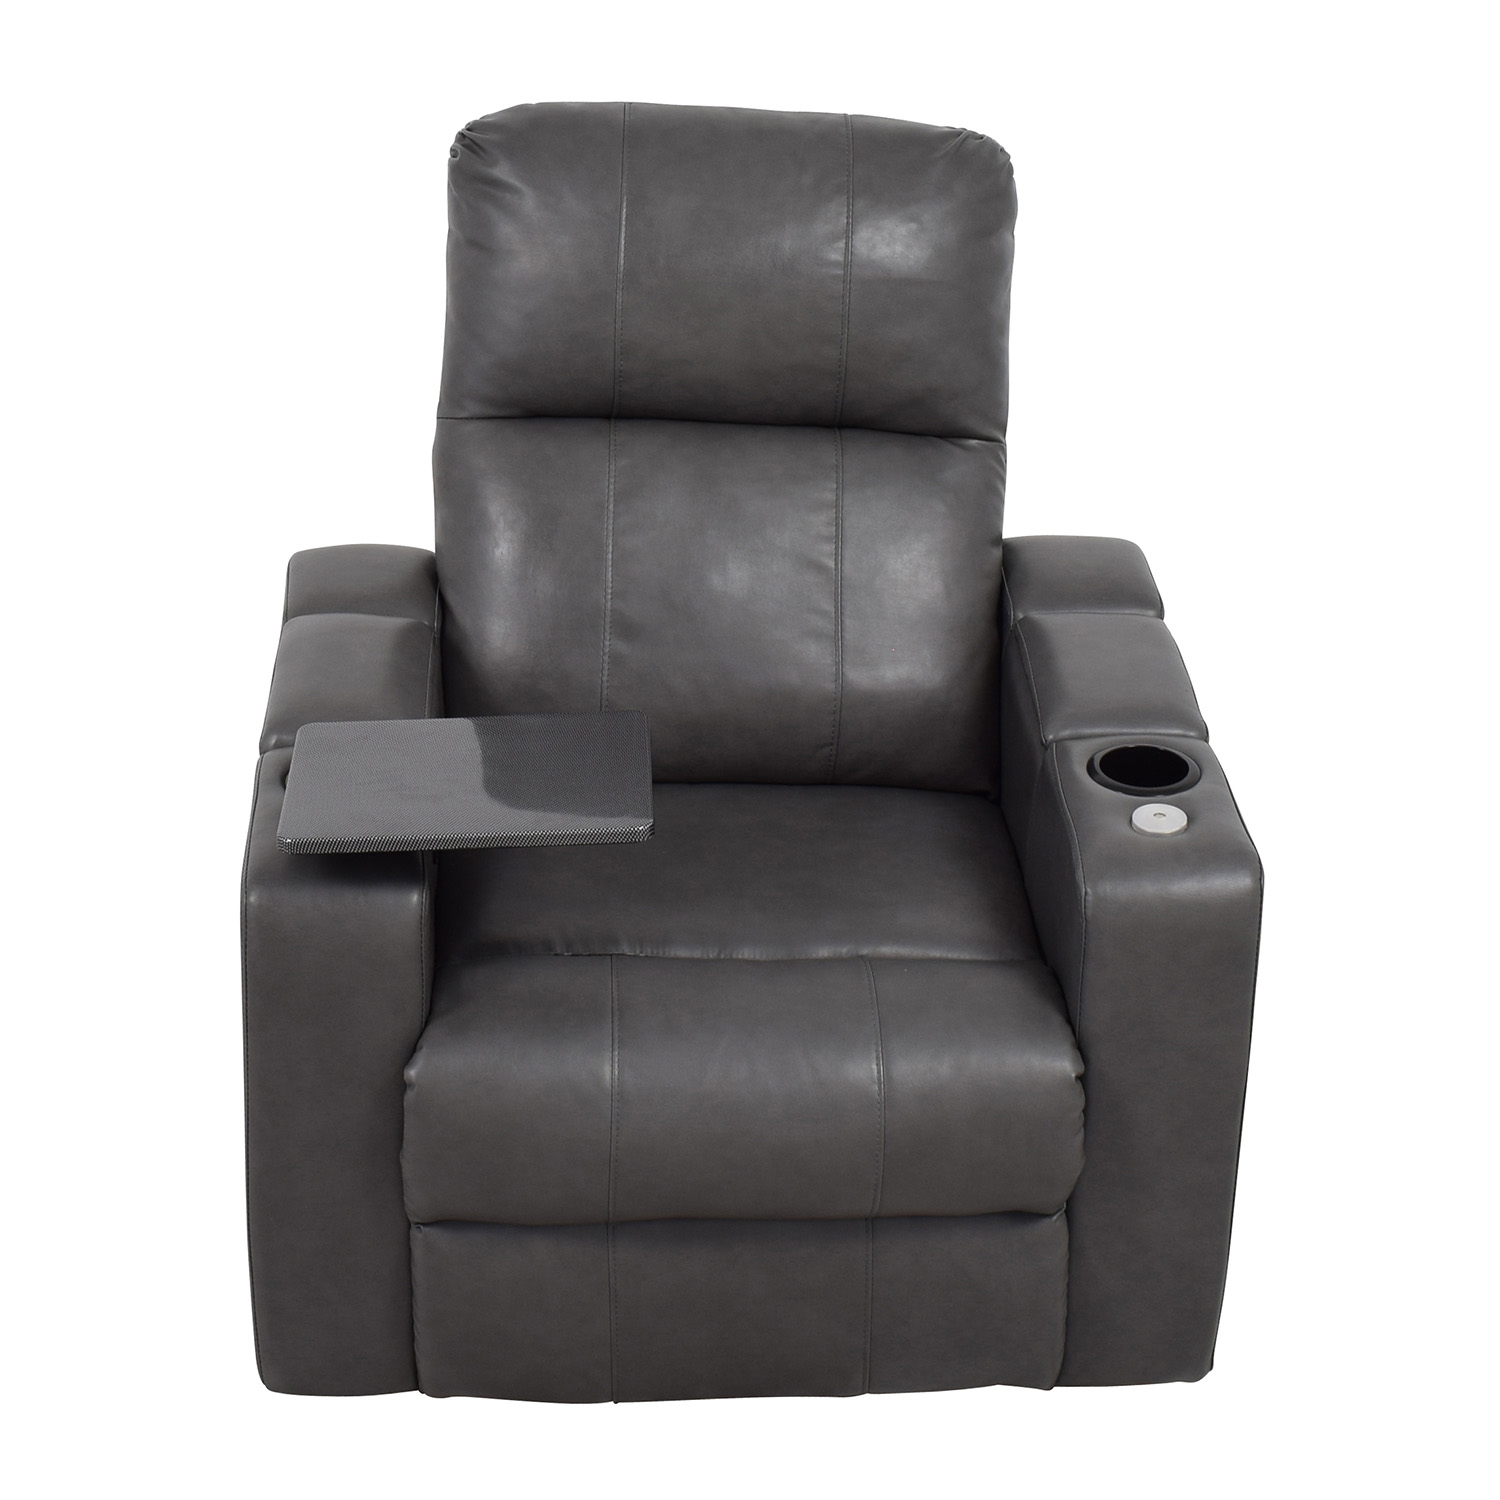 Leather recliner chair cheap leather creations leather for Cheap leather chairs